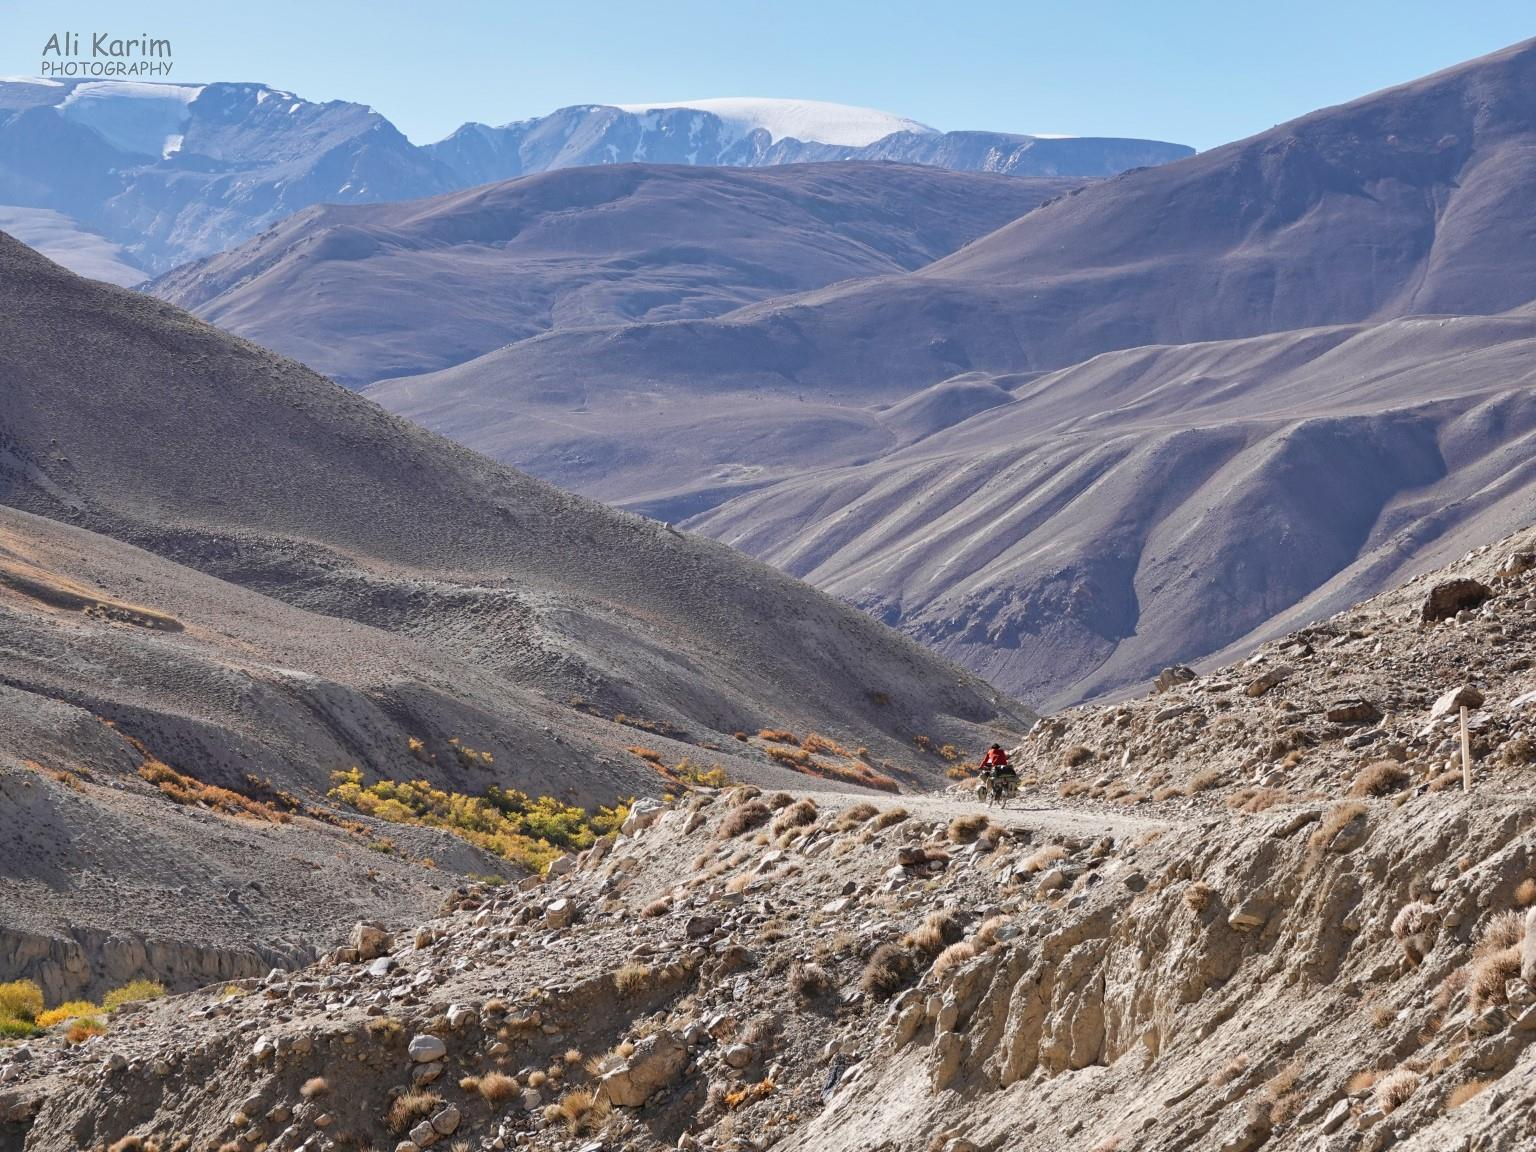 Langar, Tajikistan, Lone biker in remoteness; probably happy its downhill